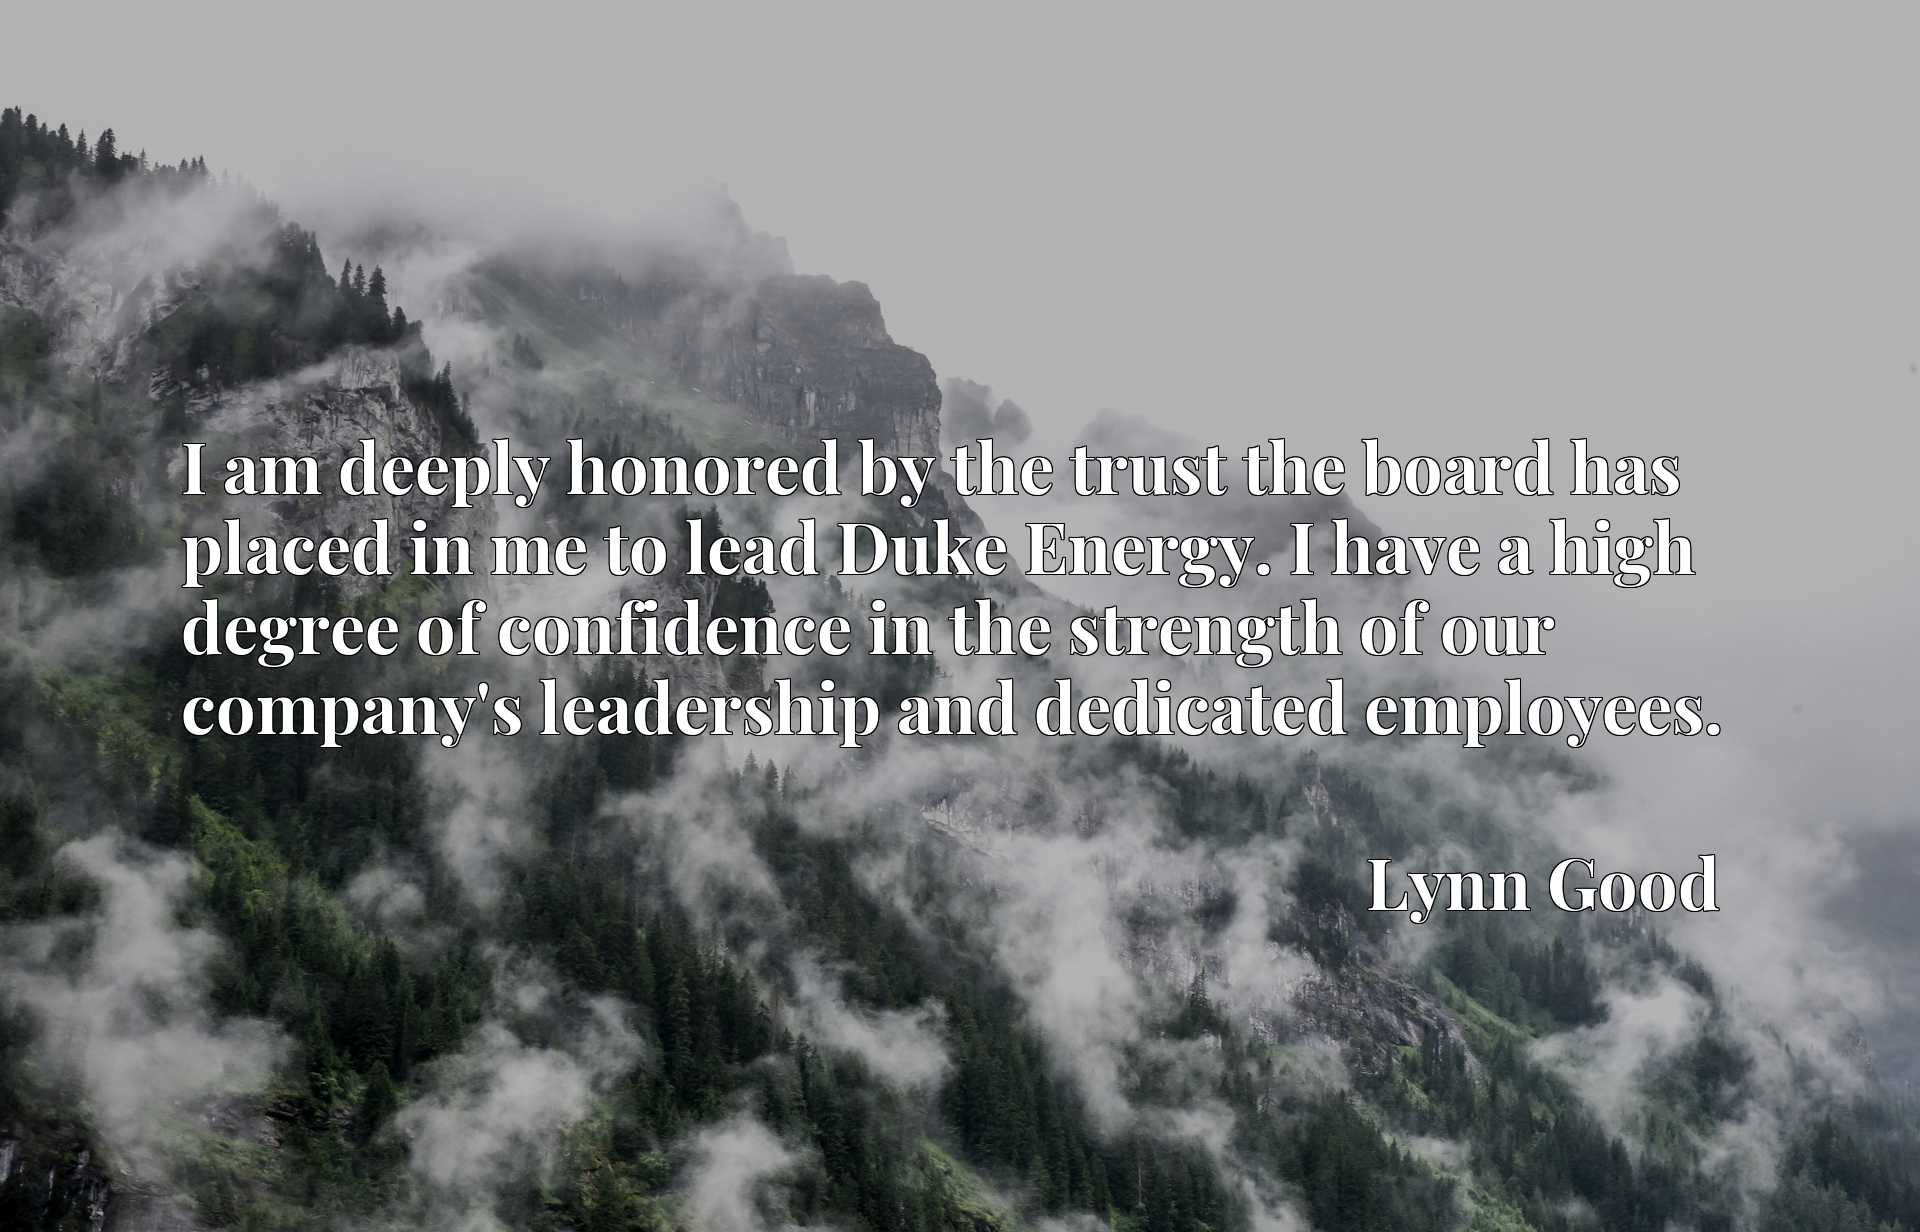 Quote Picture :I am deeply honored by the trust the board has placed in me to lead Duke Energy. I have a high degree of confidence in the strength of our company's leadership and dedicated employees.